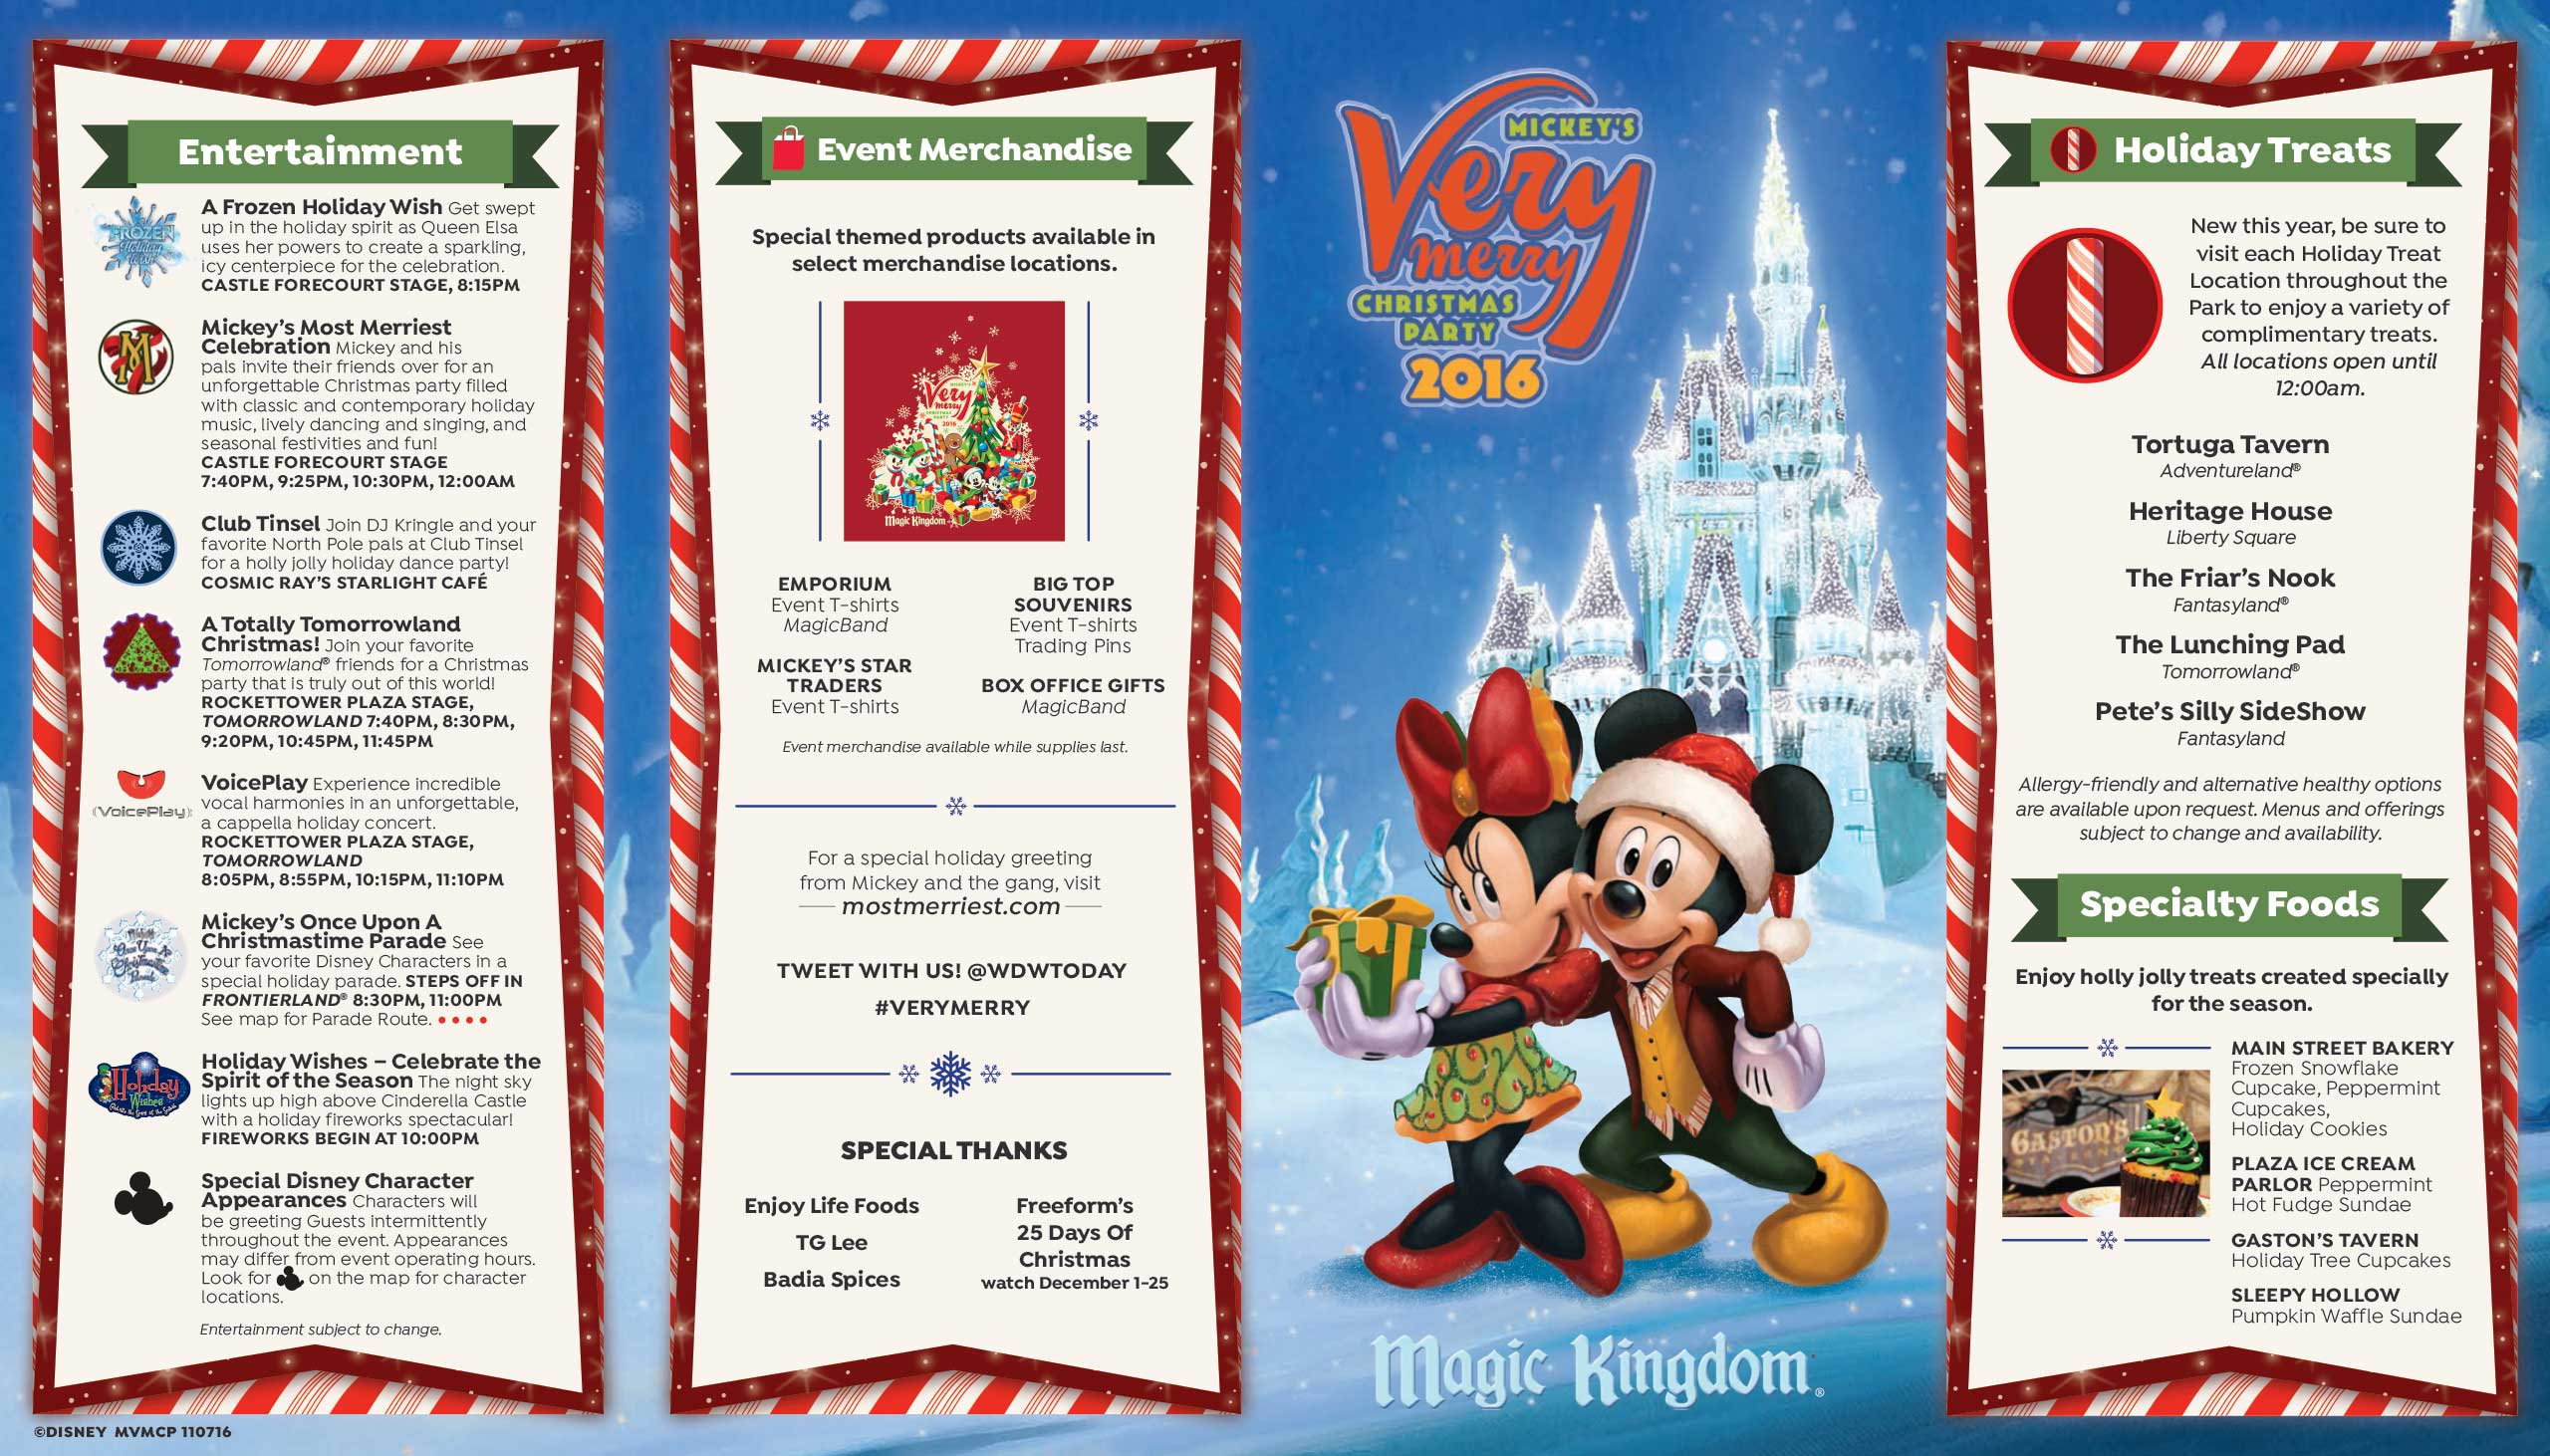 Mickeys Very Merry Christmas Party.Mickey S Very Merry Christmas Party 2016 Guide Map Photo 1